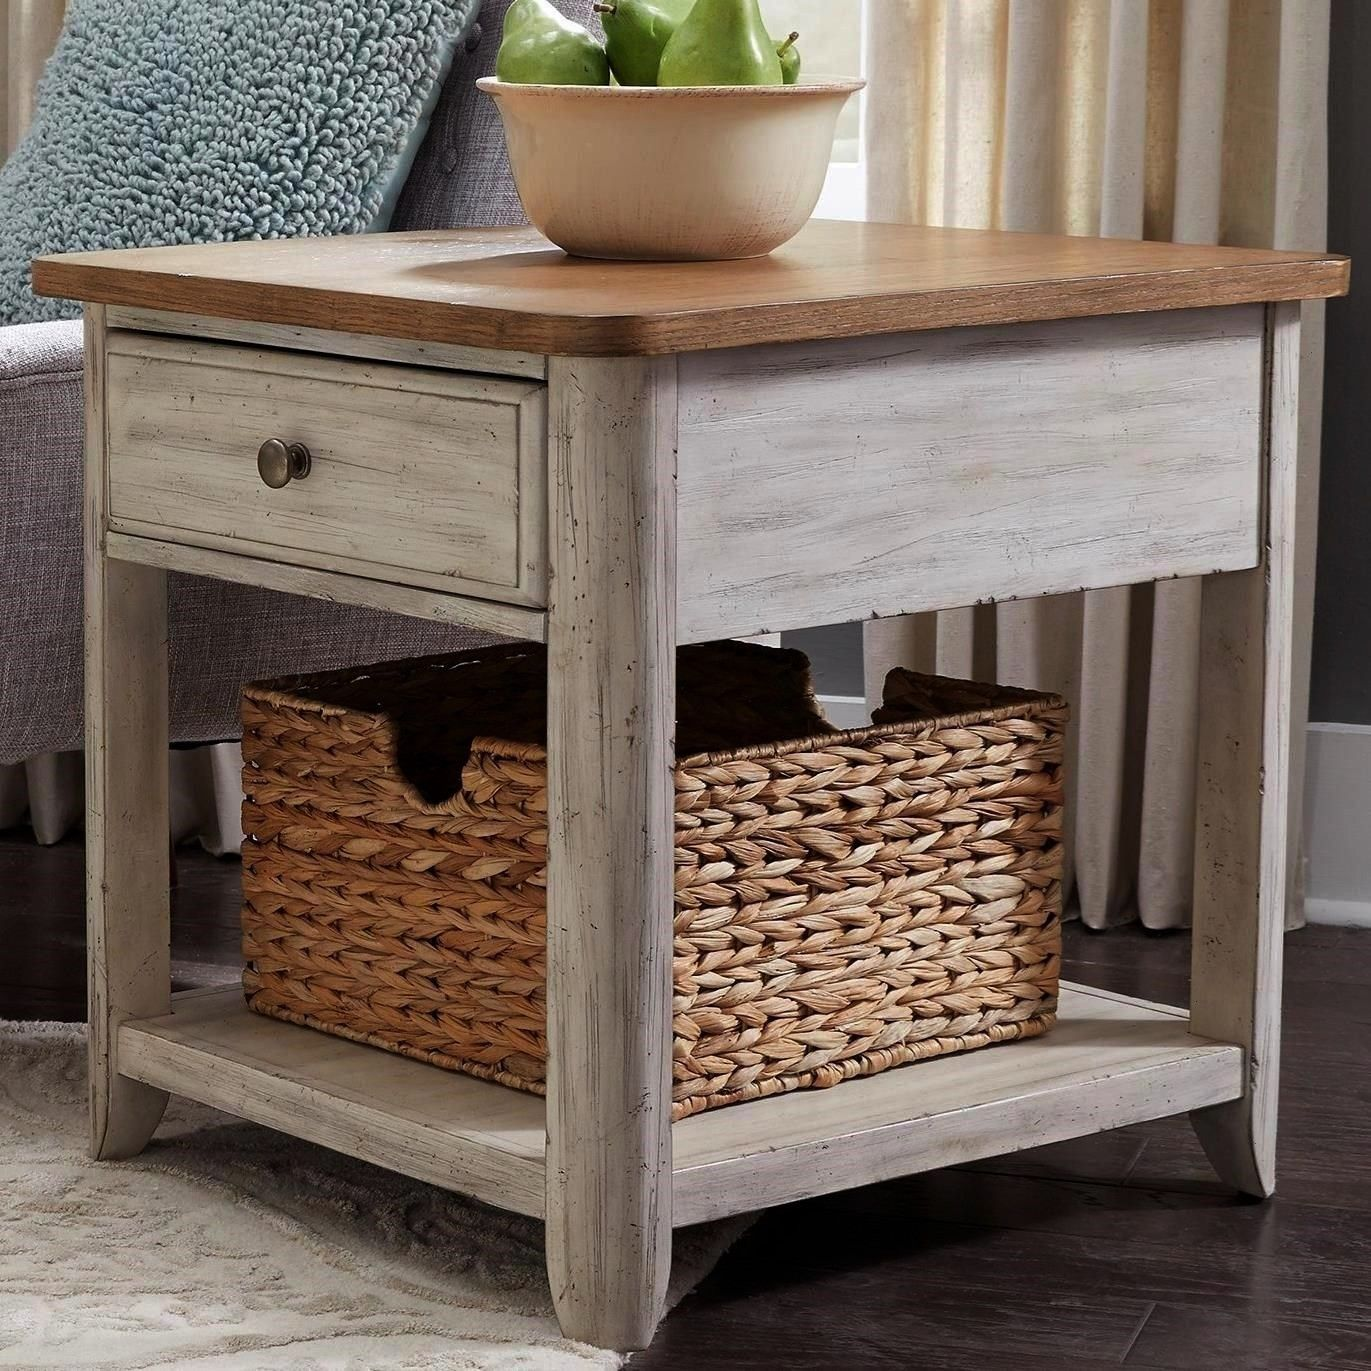 Reimagined Relaxed Vintage 1 Drawer End Table with Basket by Liberty Furniture at Darvin FurniturebasketFarmhouse Reimagined Relaxed Vintage 1 Drawer End Table with Baske...